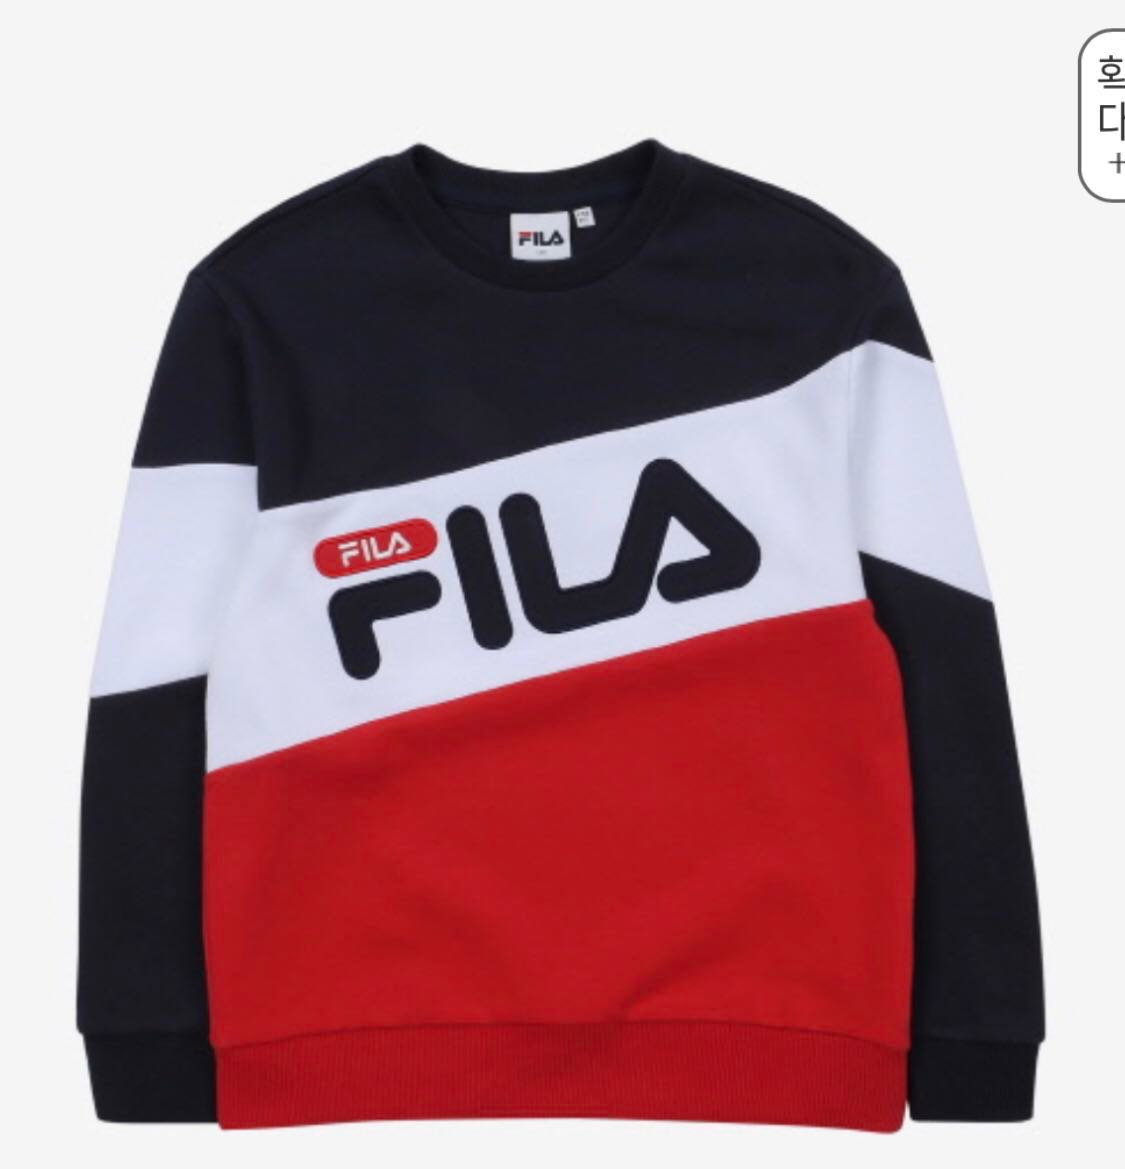 5d161cf4666a Fila tri coloured pullover sweater AUTHENTIC, Men's Fashion, Clothes ...